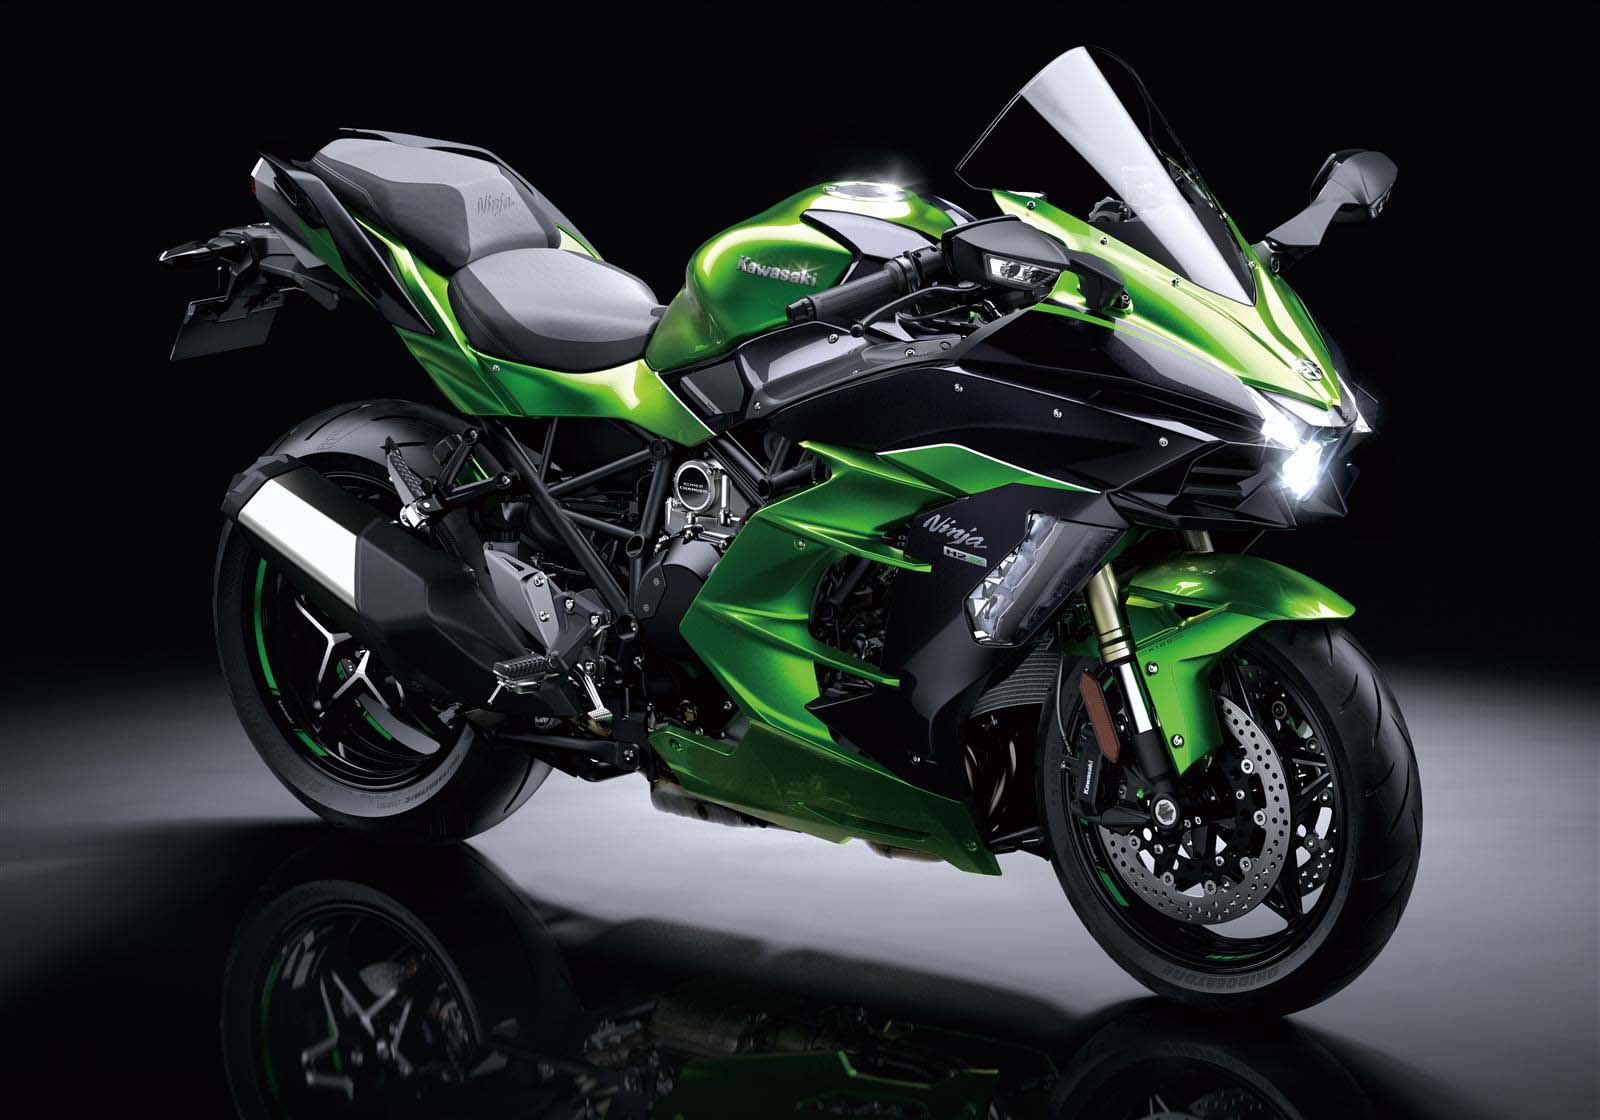 Supercharged Kawasaki Ninja H2 SX with 200hp on Tap - Asphalt & Rubber